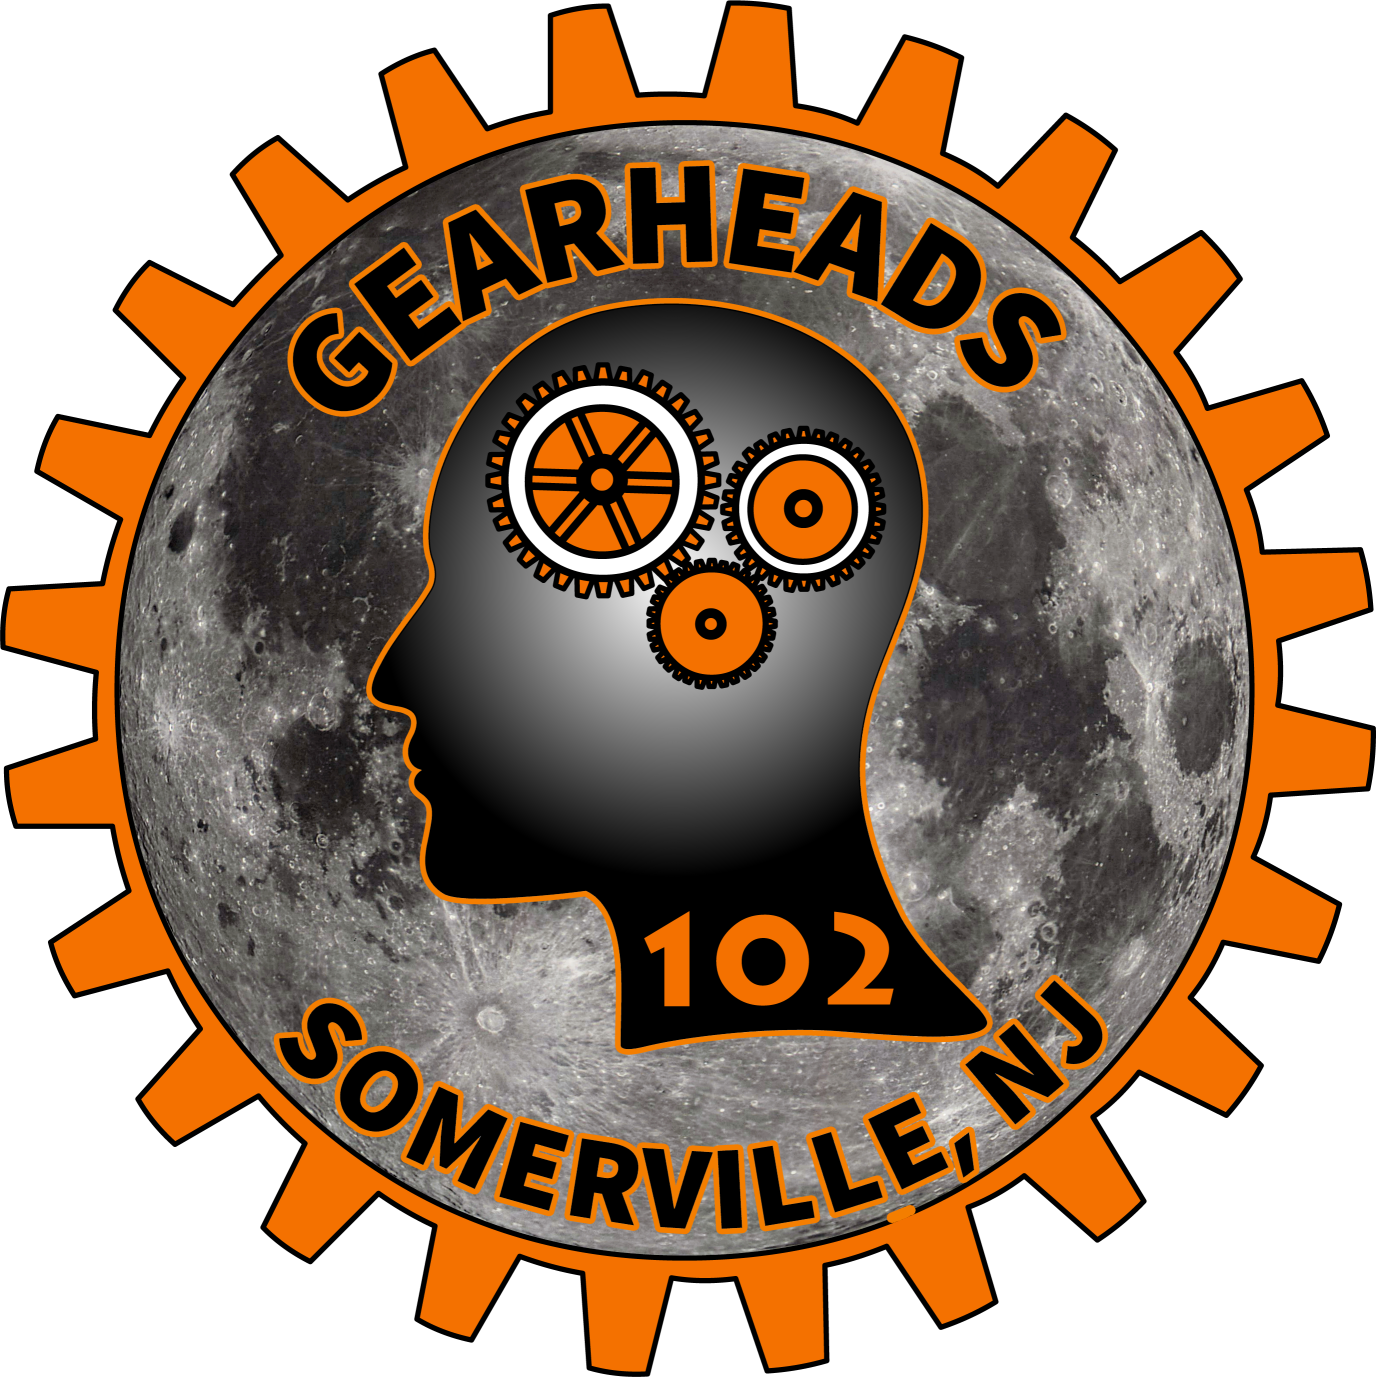 FRC Team 102 | The Gearheads